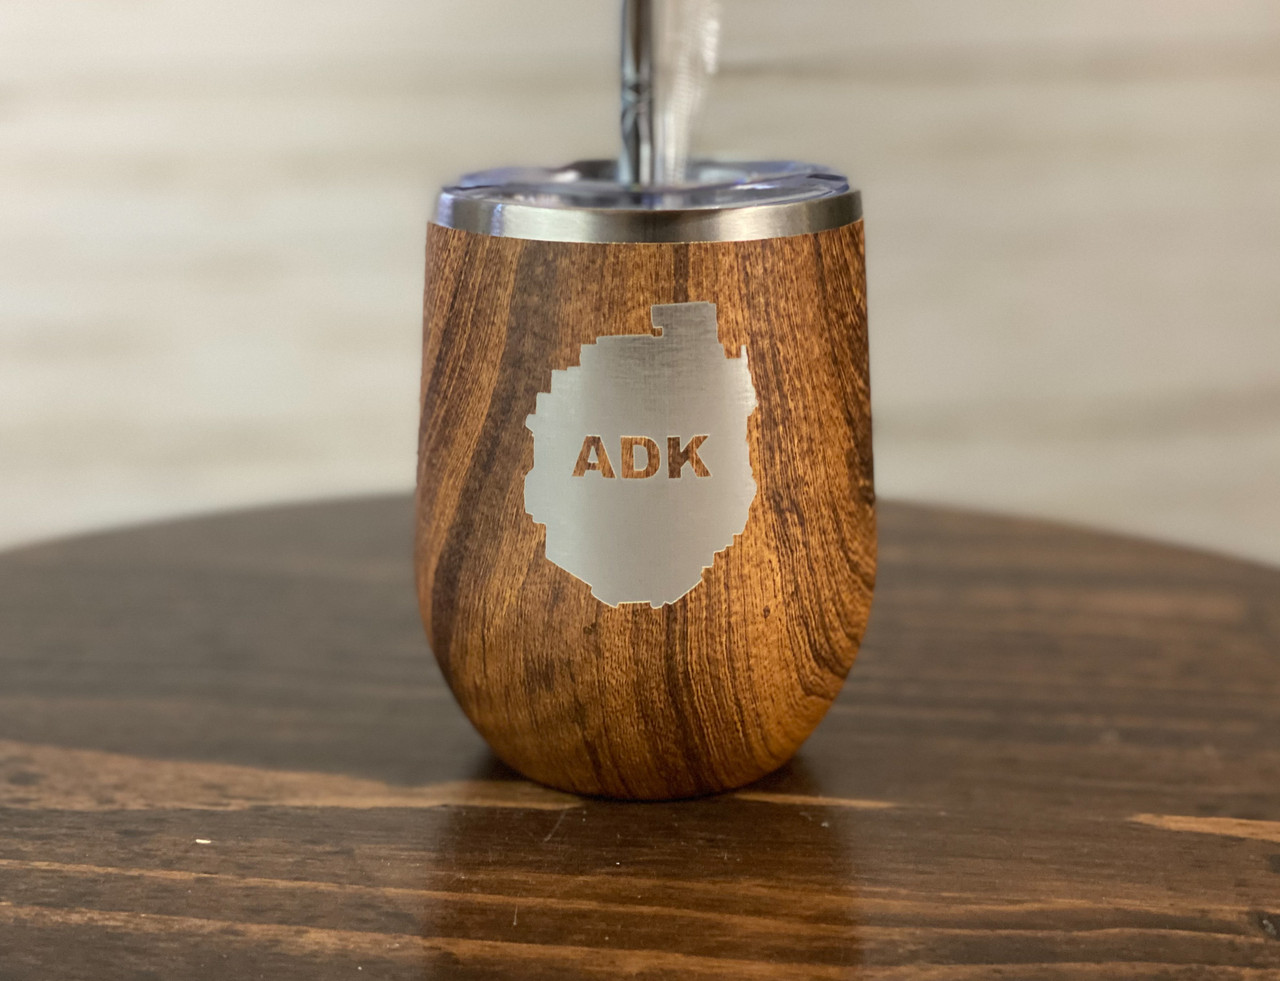 Limited Edition Woodgrain ADK Park 12 oz Thermal Drinkware